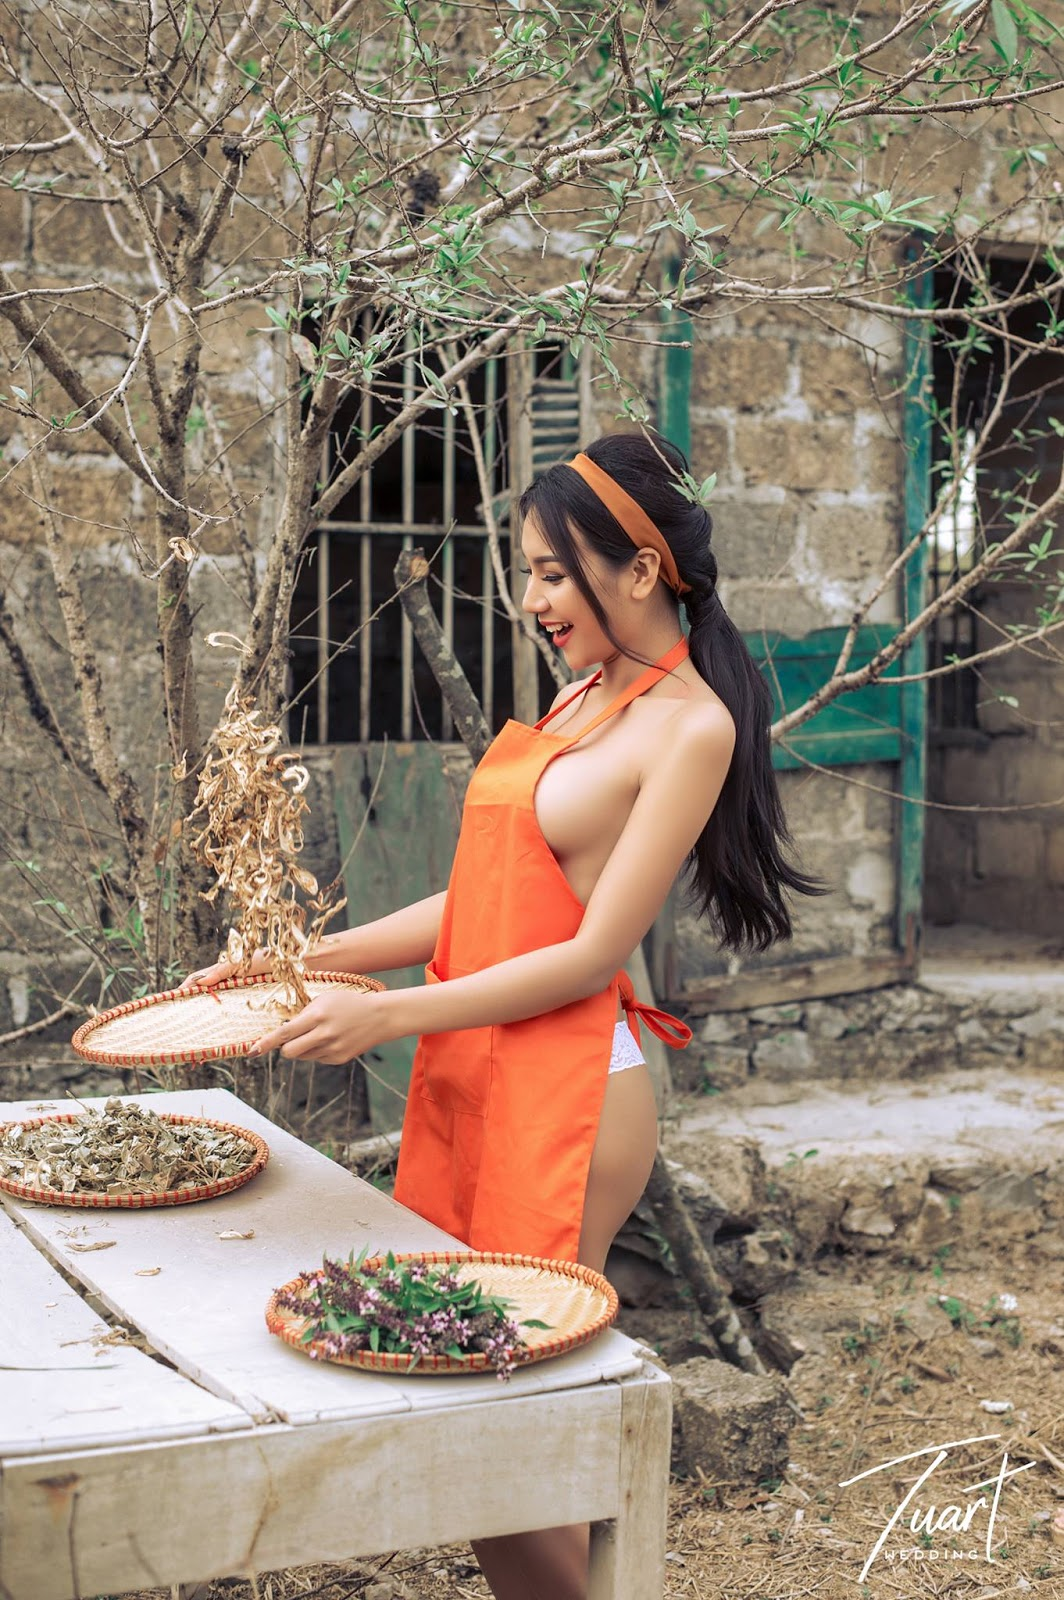 bo-anh-tuyet-tinh-coc-duong-len-tien-canh-cuc-sexy-fullphan-2-09421d.jpg